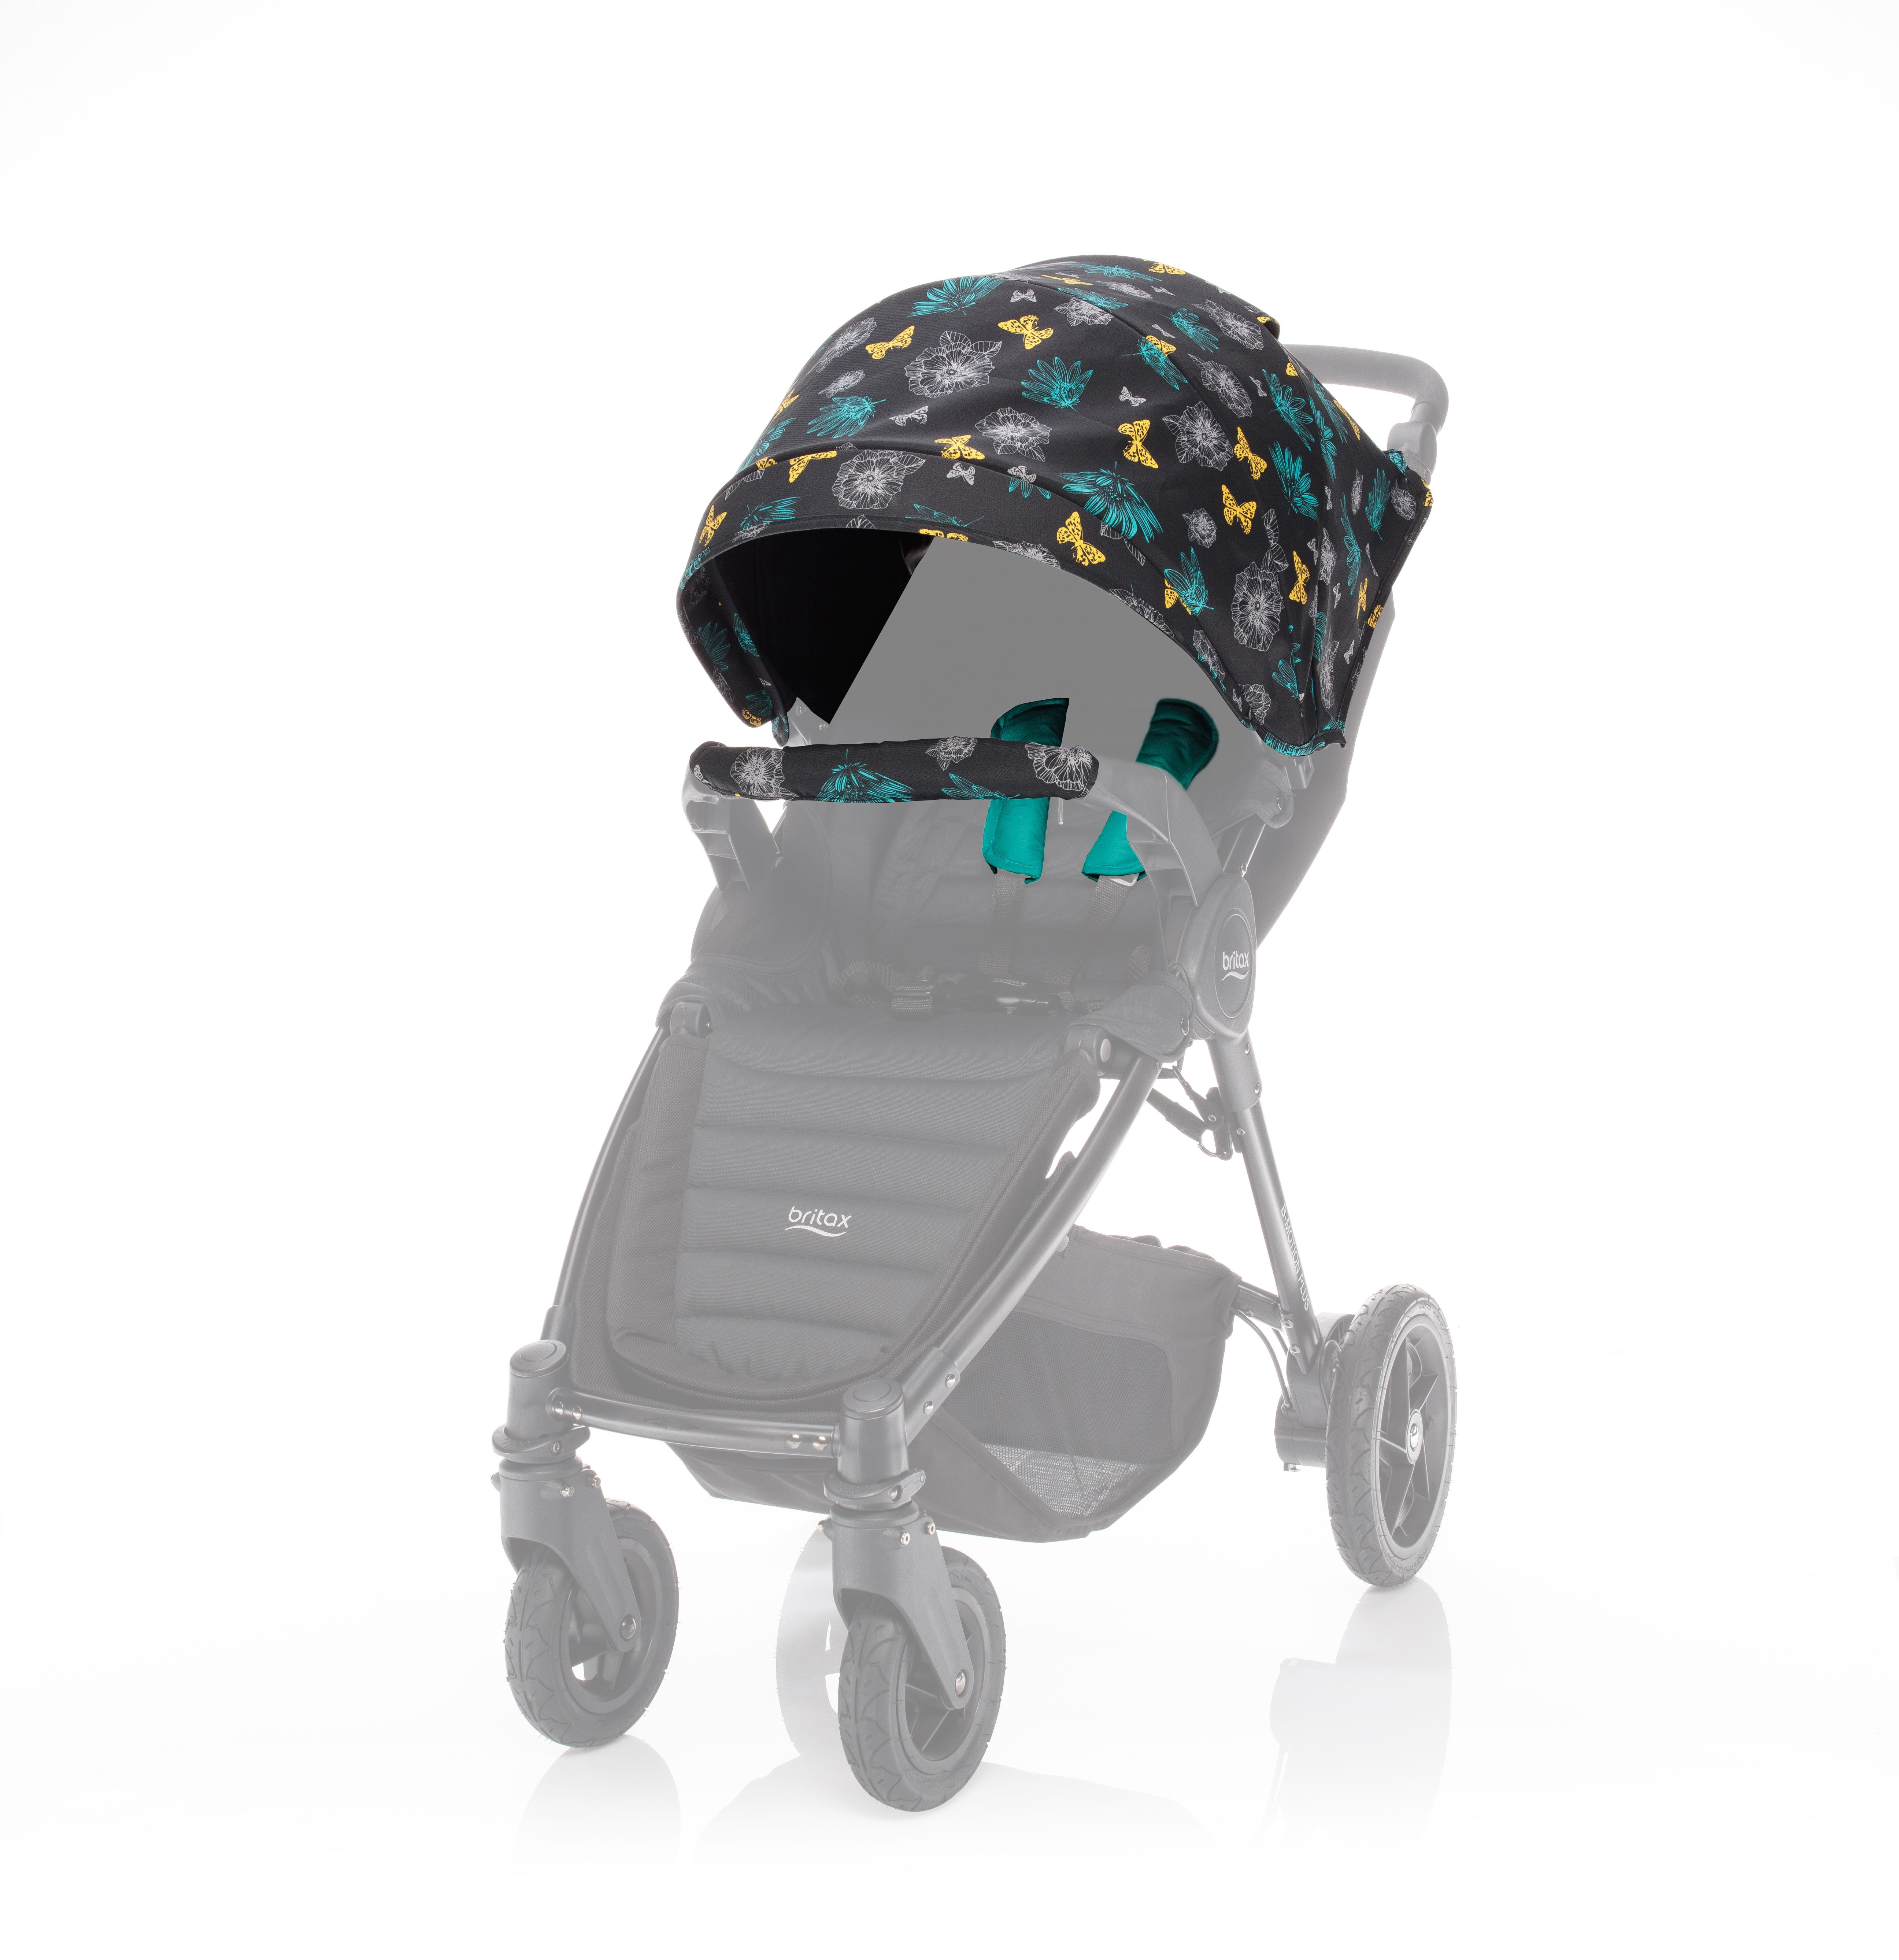 Britax farebný SET LIMITED ku kočíkom B-Agile plus/B-Motion plus - Butterfly Flowers